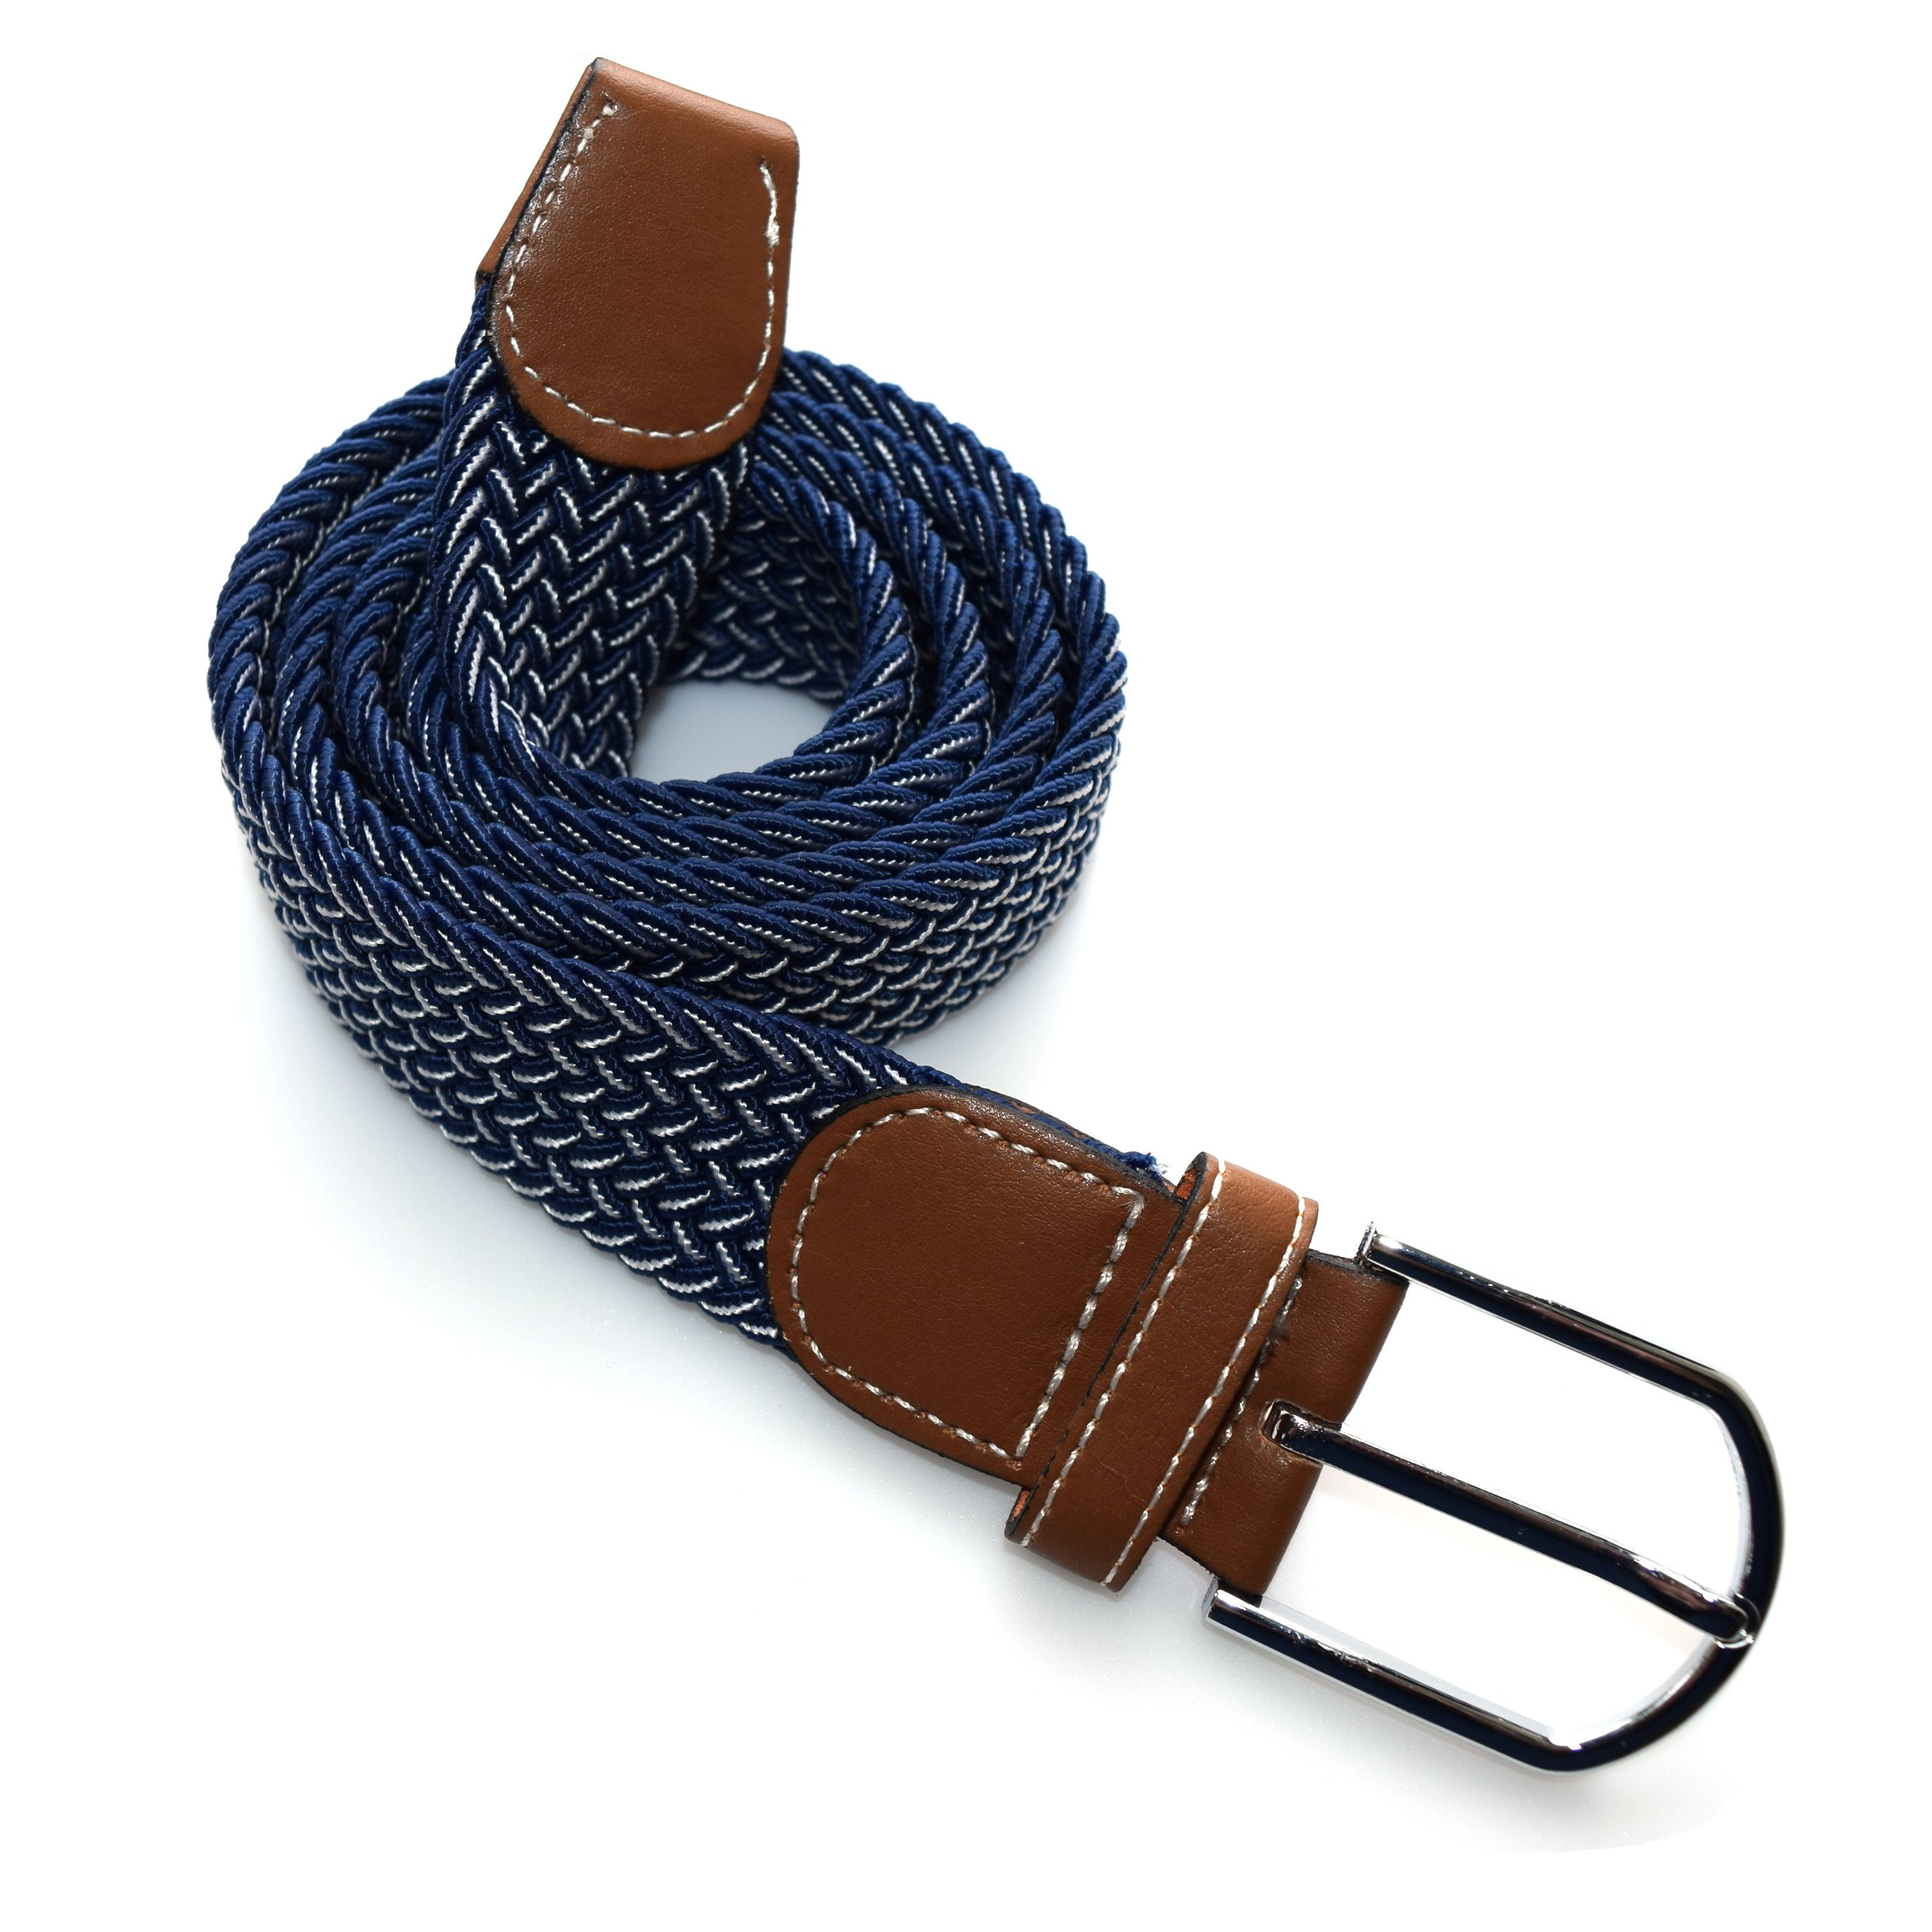 Wits + Beaux Men's Elastic Fabric Woven Braided Stretch Belt (Adjustable Fit) Fun, Colorful Golf Casual Wear (Midnight Blue White Interlace)